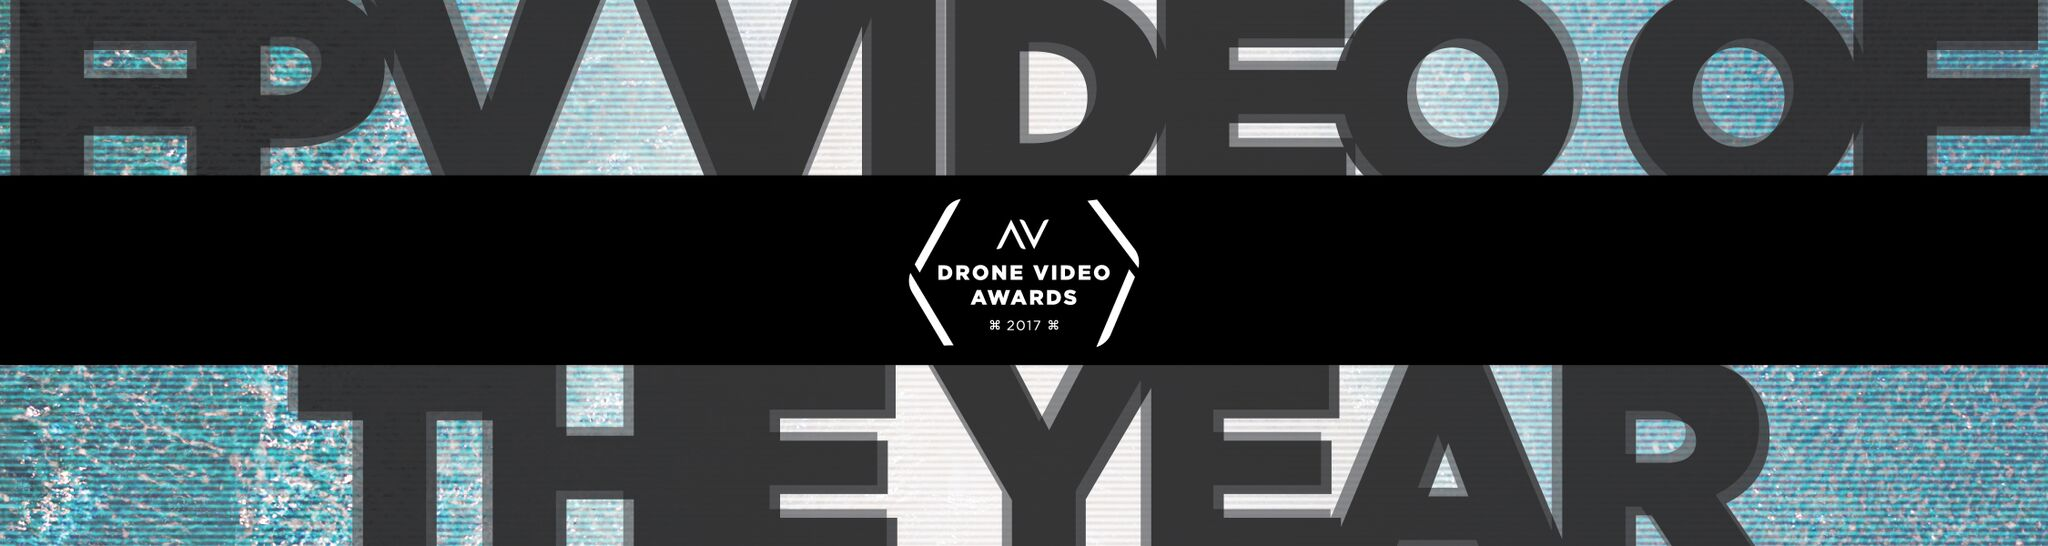 AirVūz Drone Video Awards: FPV Video of the Year